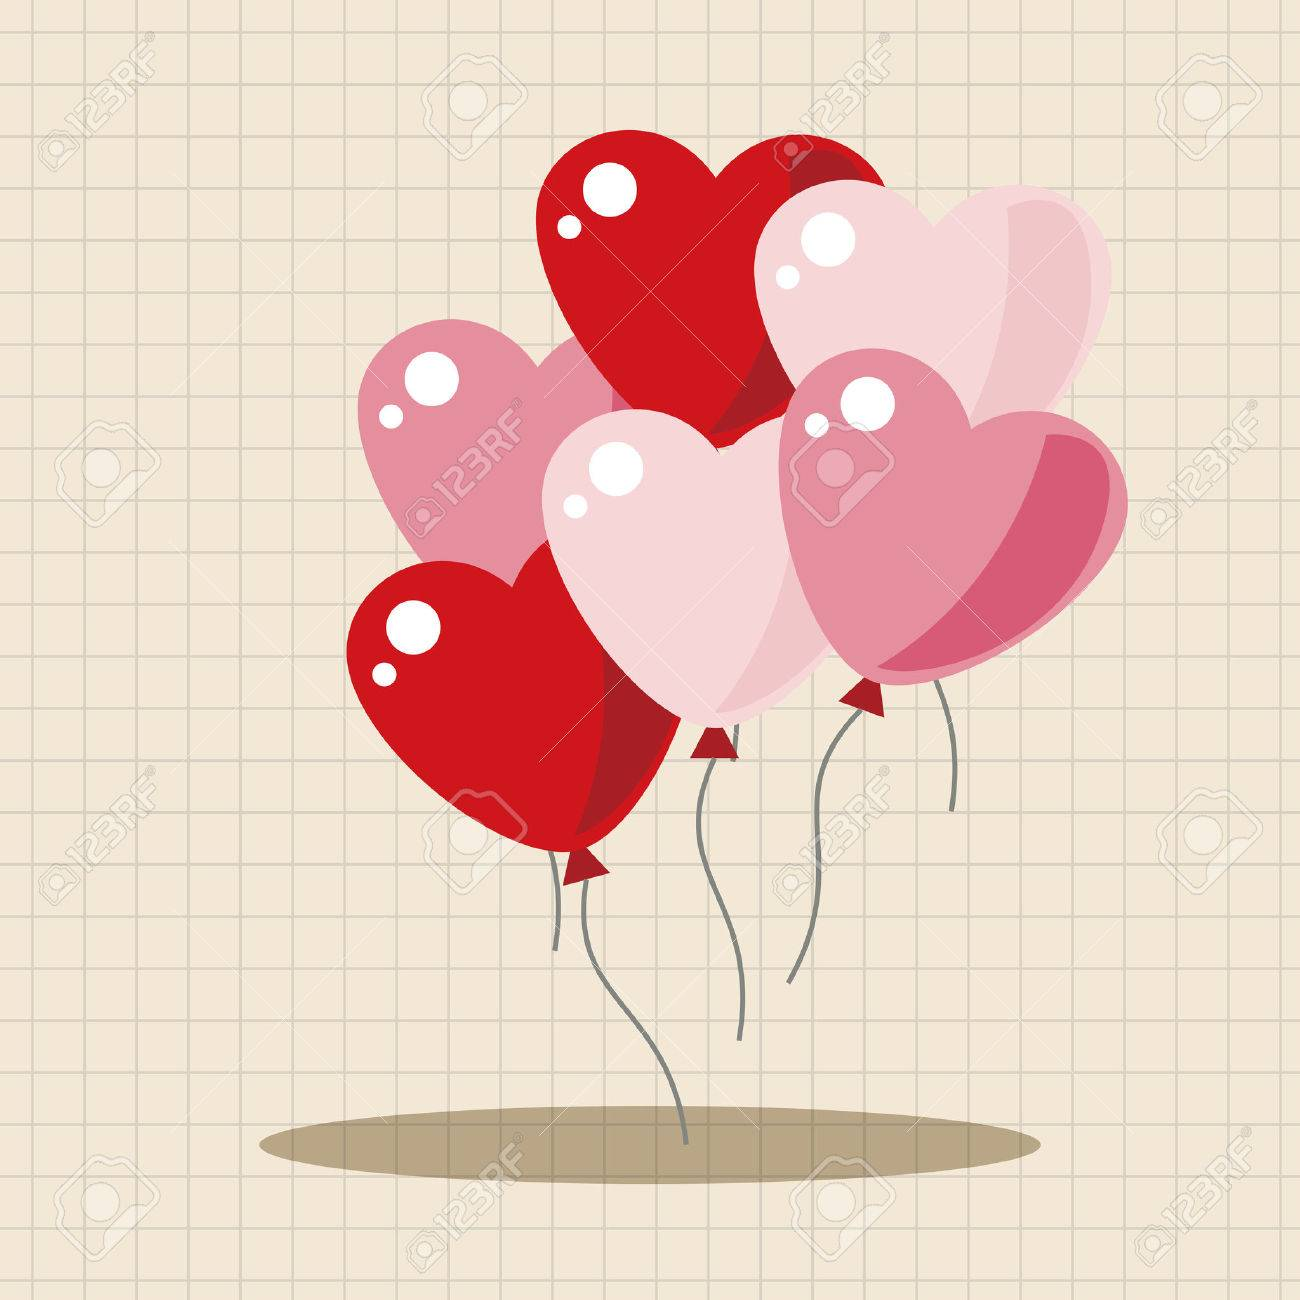 Valentine S Day Balloons Theme Elements Royalty Free Cliparts